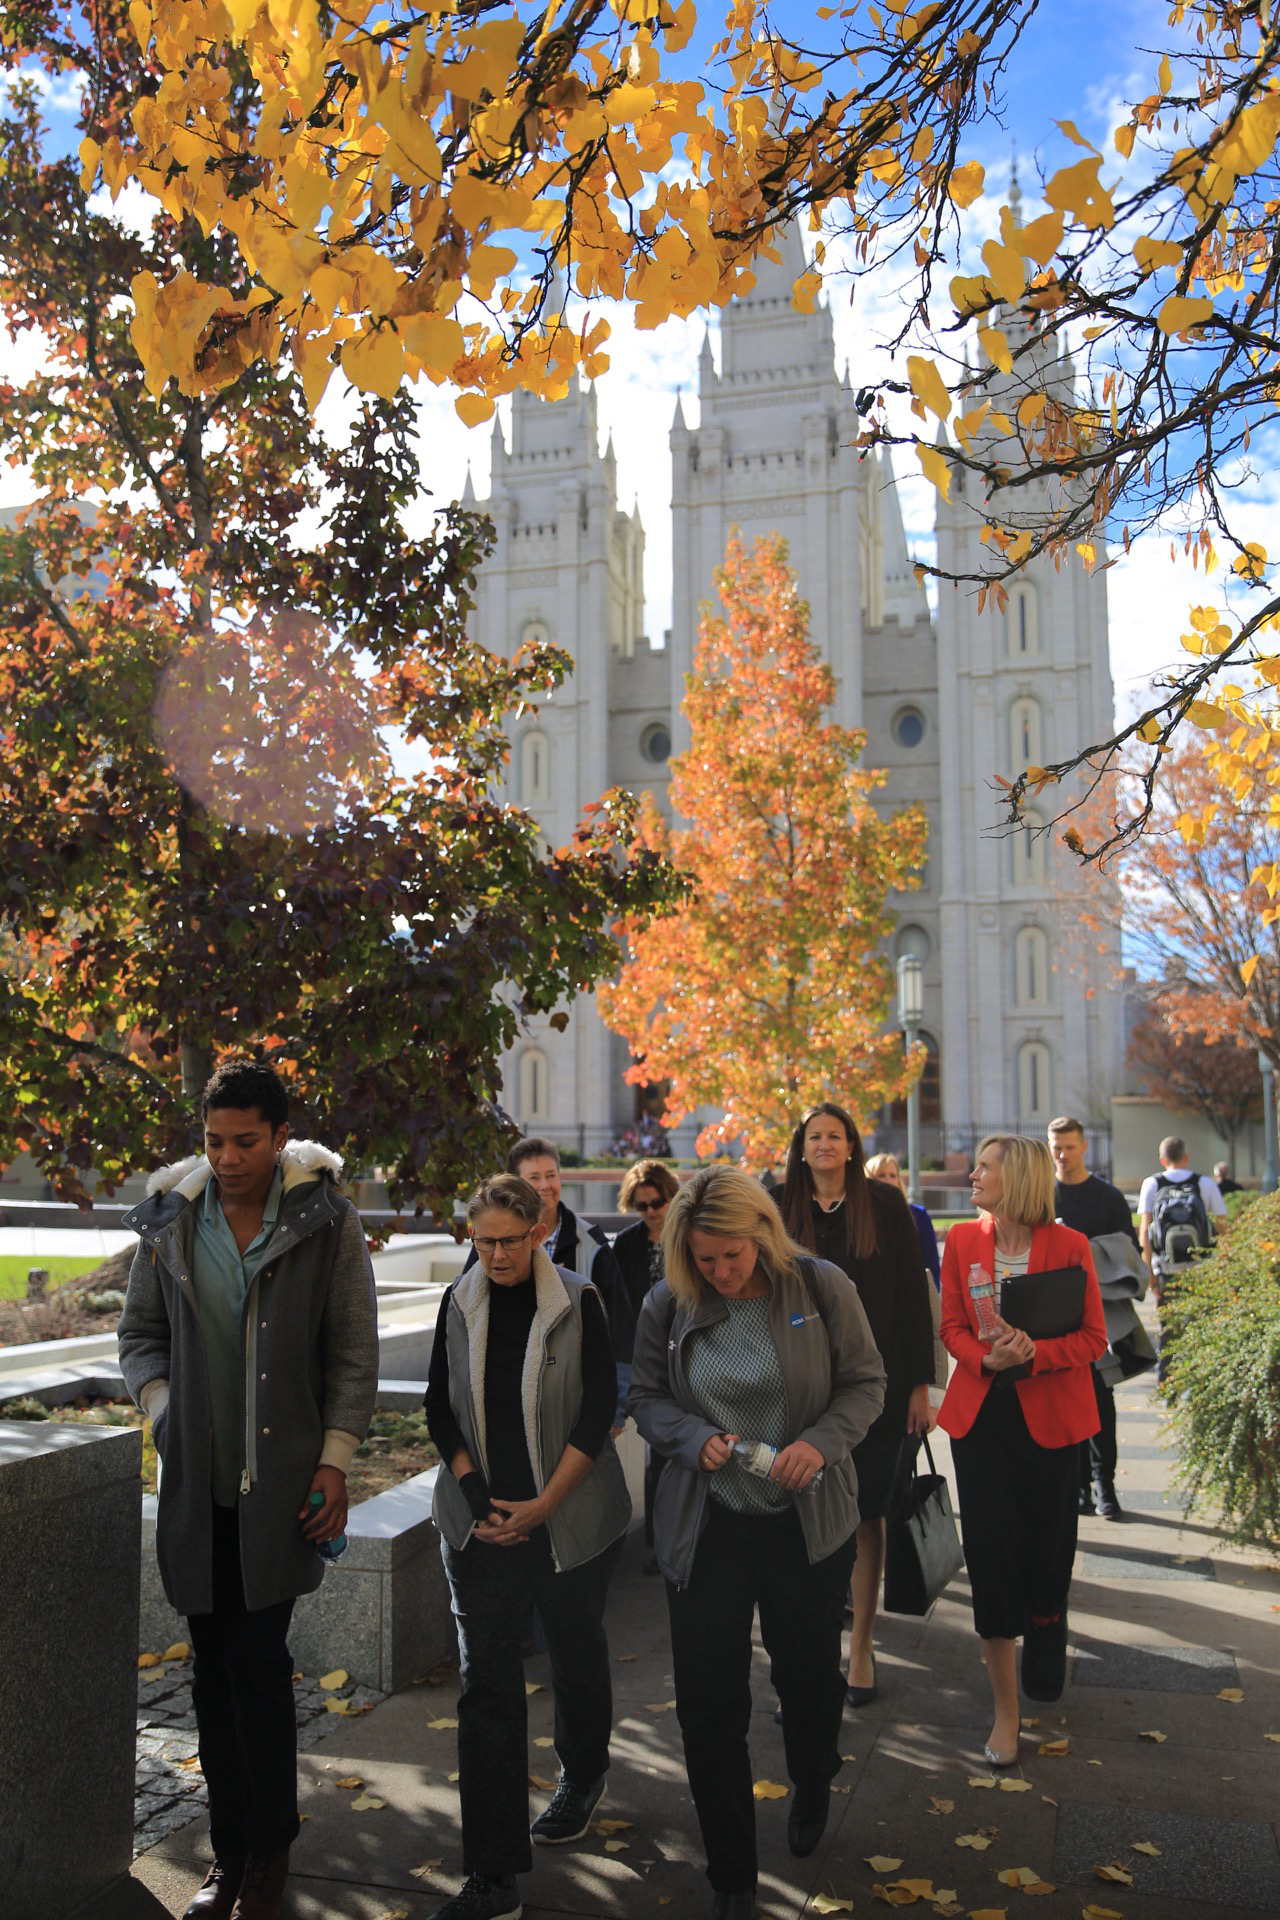 The Common Ground Executive Committee, hosted by The Church of Jesus Christ of Latter-day Saints, was given a tour of Temple Square on Friday, Nov. 2.